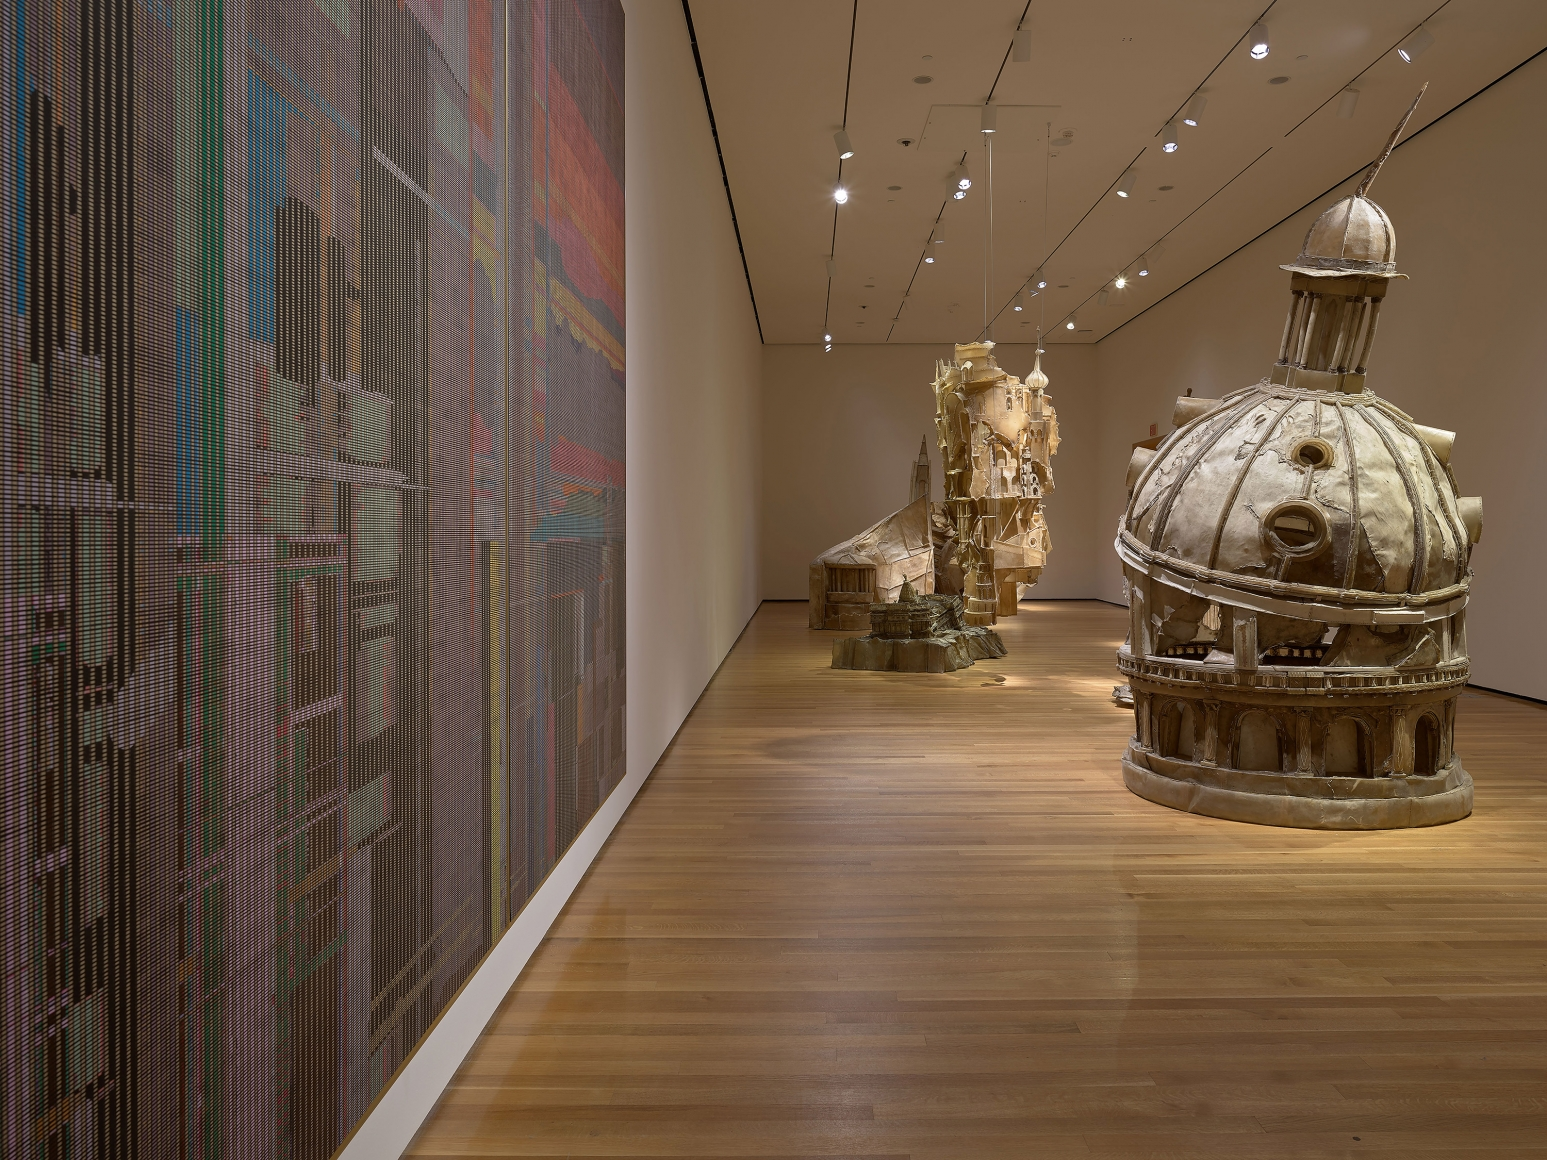 View 5 of Liu Wei's solo museum exhibition titled Invisible Cities at the Cleveland Museum of Art